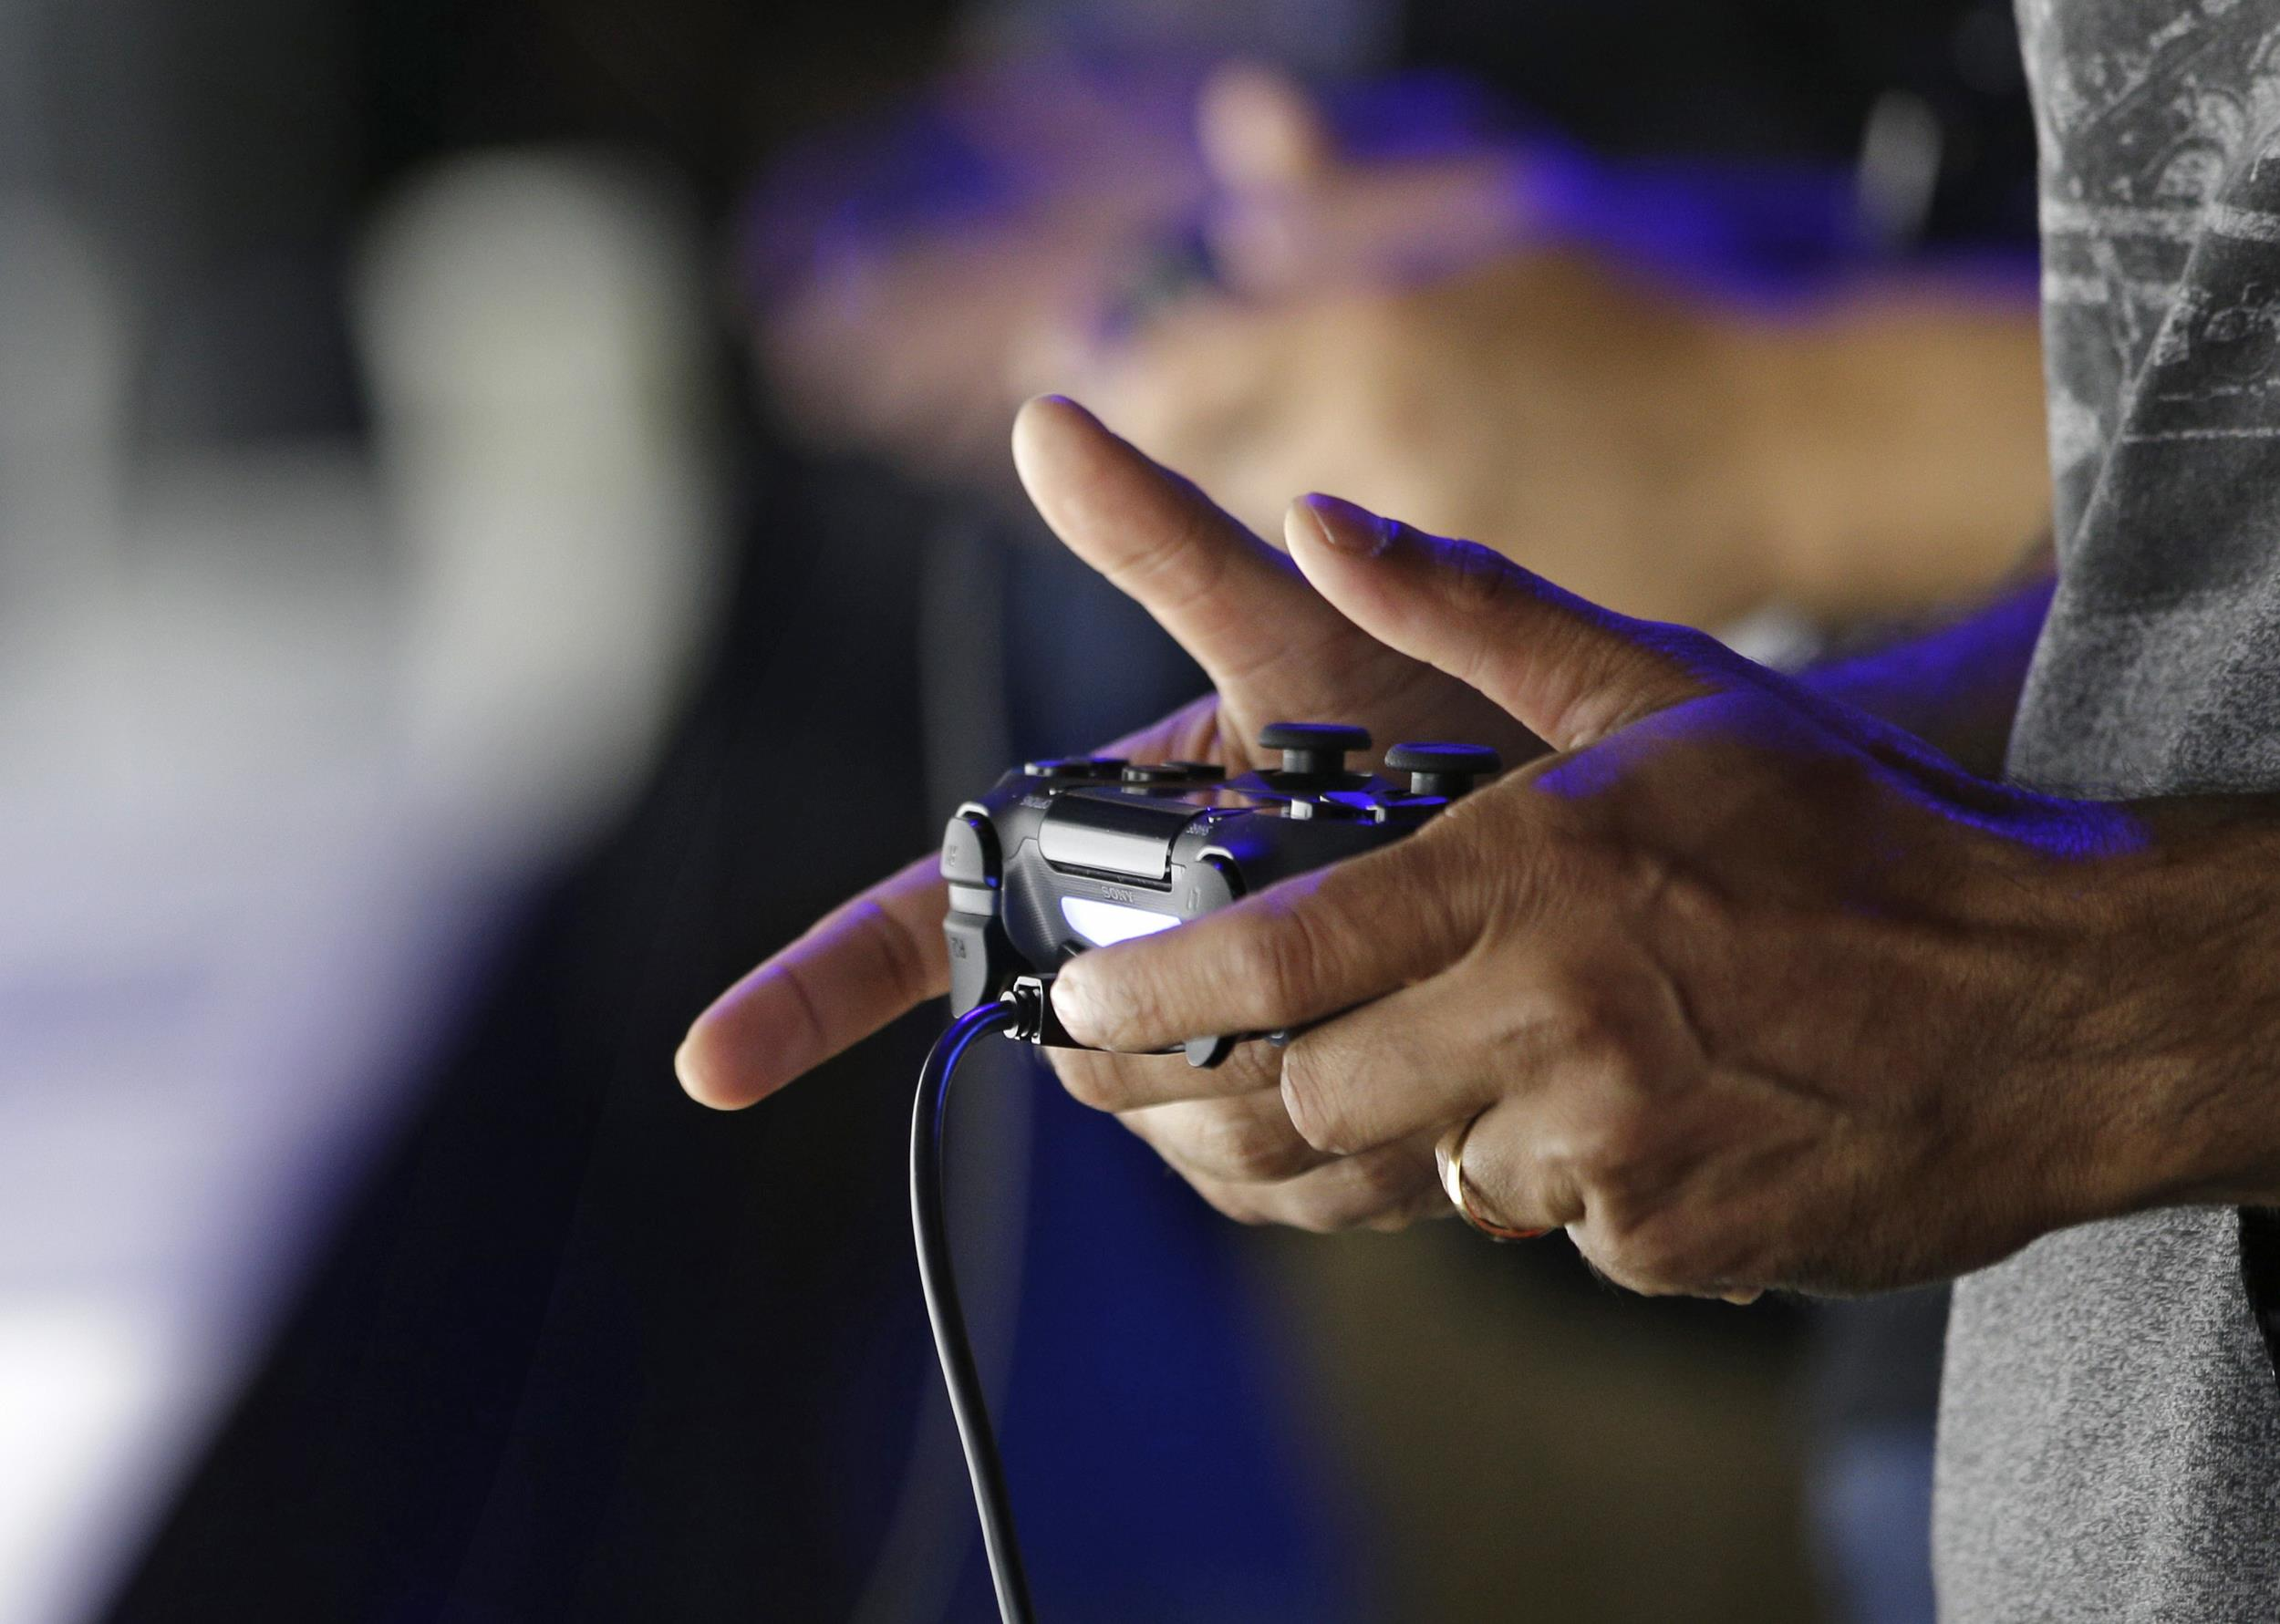 Attendees play video games on the PlayStation 4 at the Sony booth during the Electronic Entertainment Expo in Los Angeles in 2013.